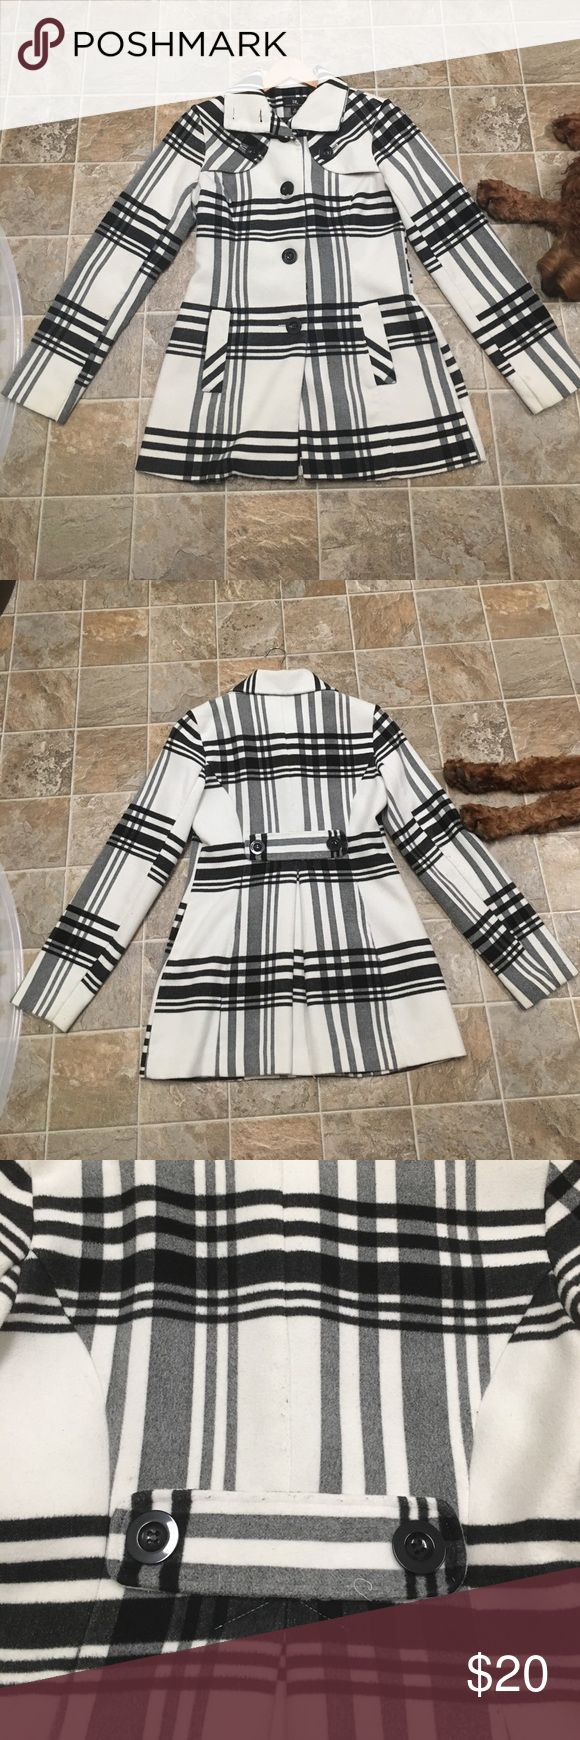 Long Plaid Coat Black and white Plaid. Preloved. Purchased at KHOLS. Some pilling on the back and one small stain on right sleeve (seen in pictures). I have had this for a few years. I get many compliments. classic piece. Sorry about the puppy in the photos, he wanted attention 😊 Jackets & Coats Pea Coats